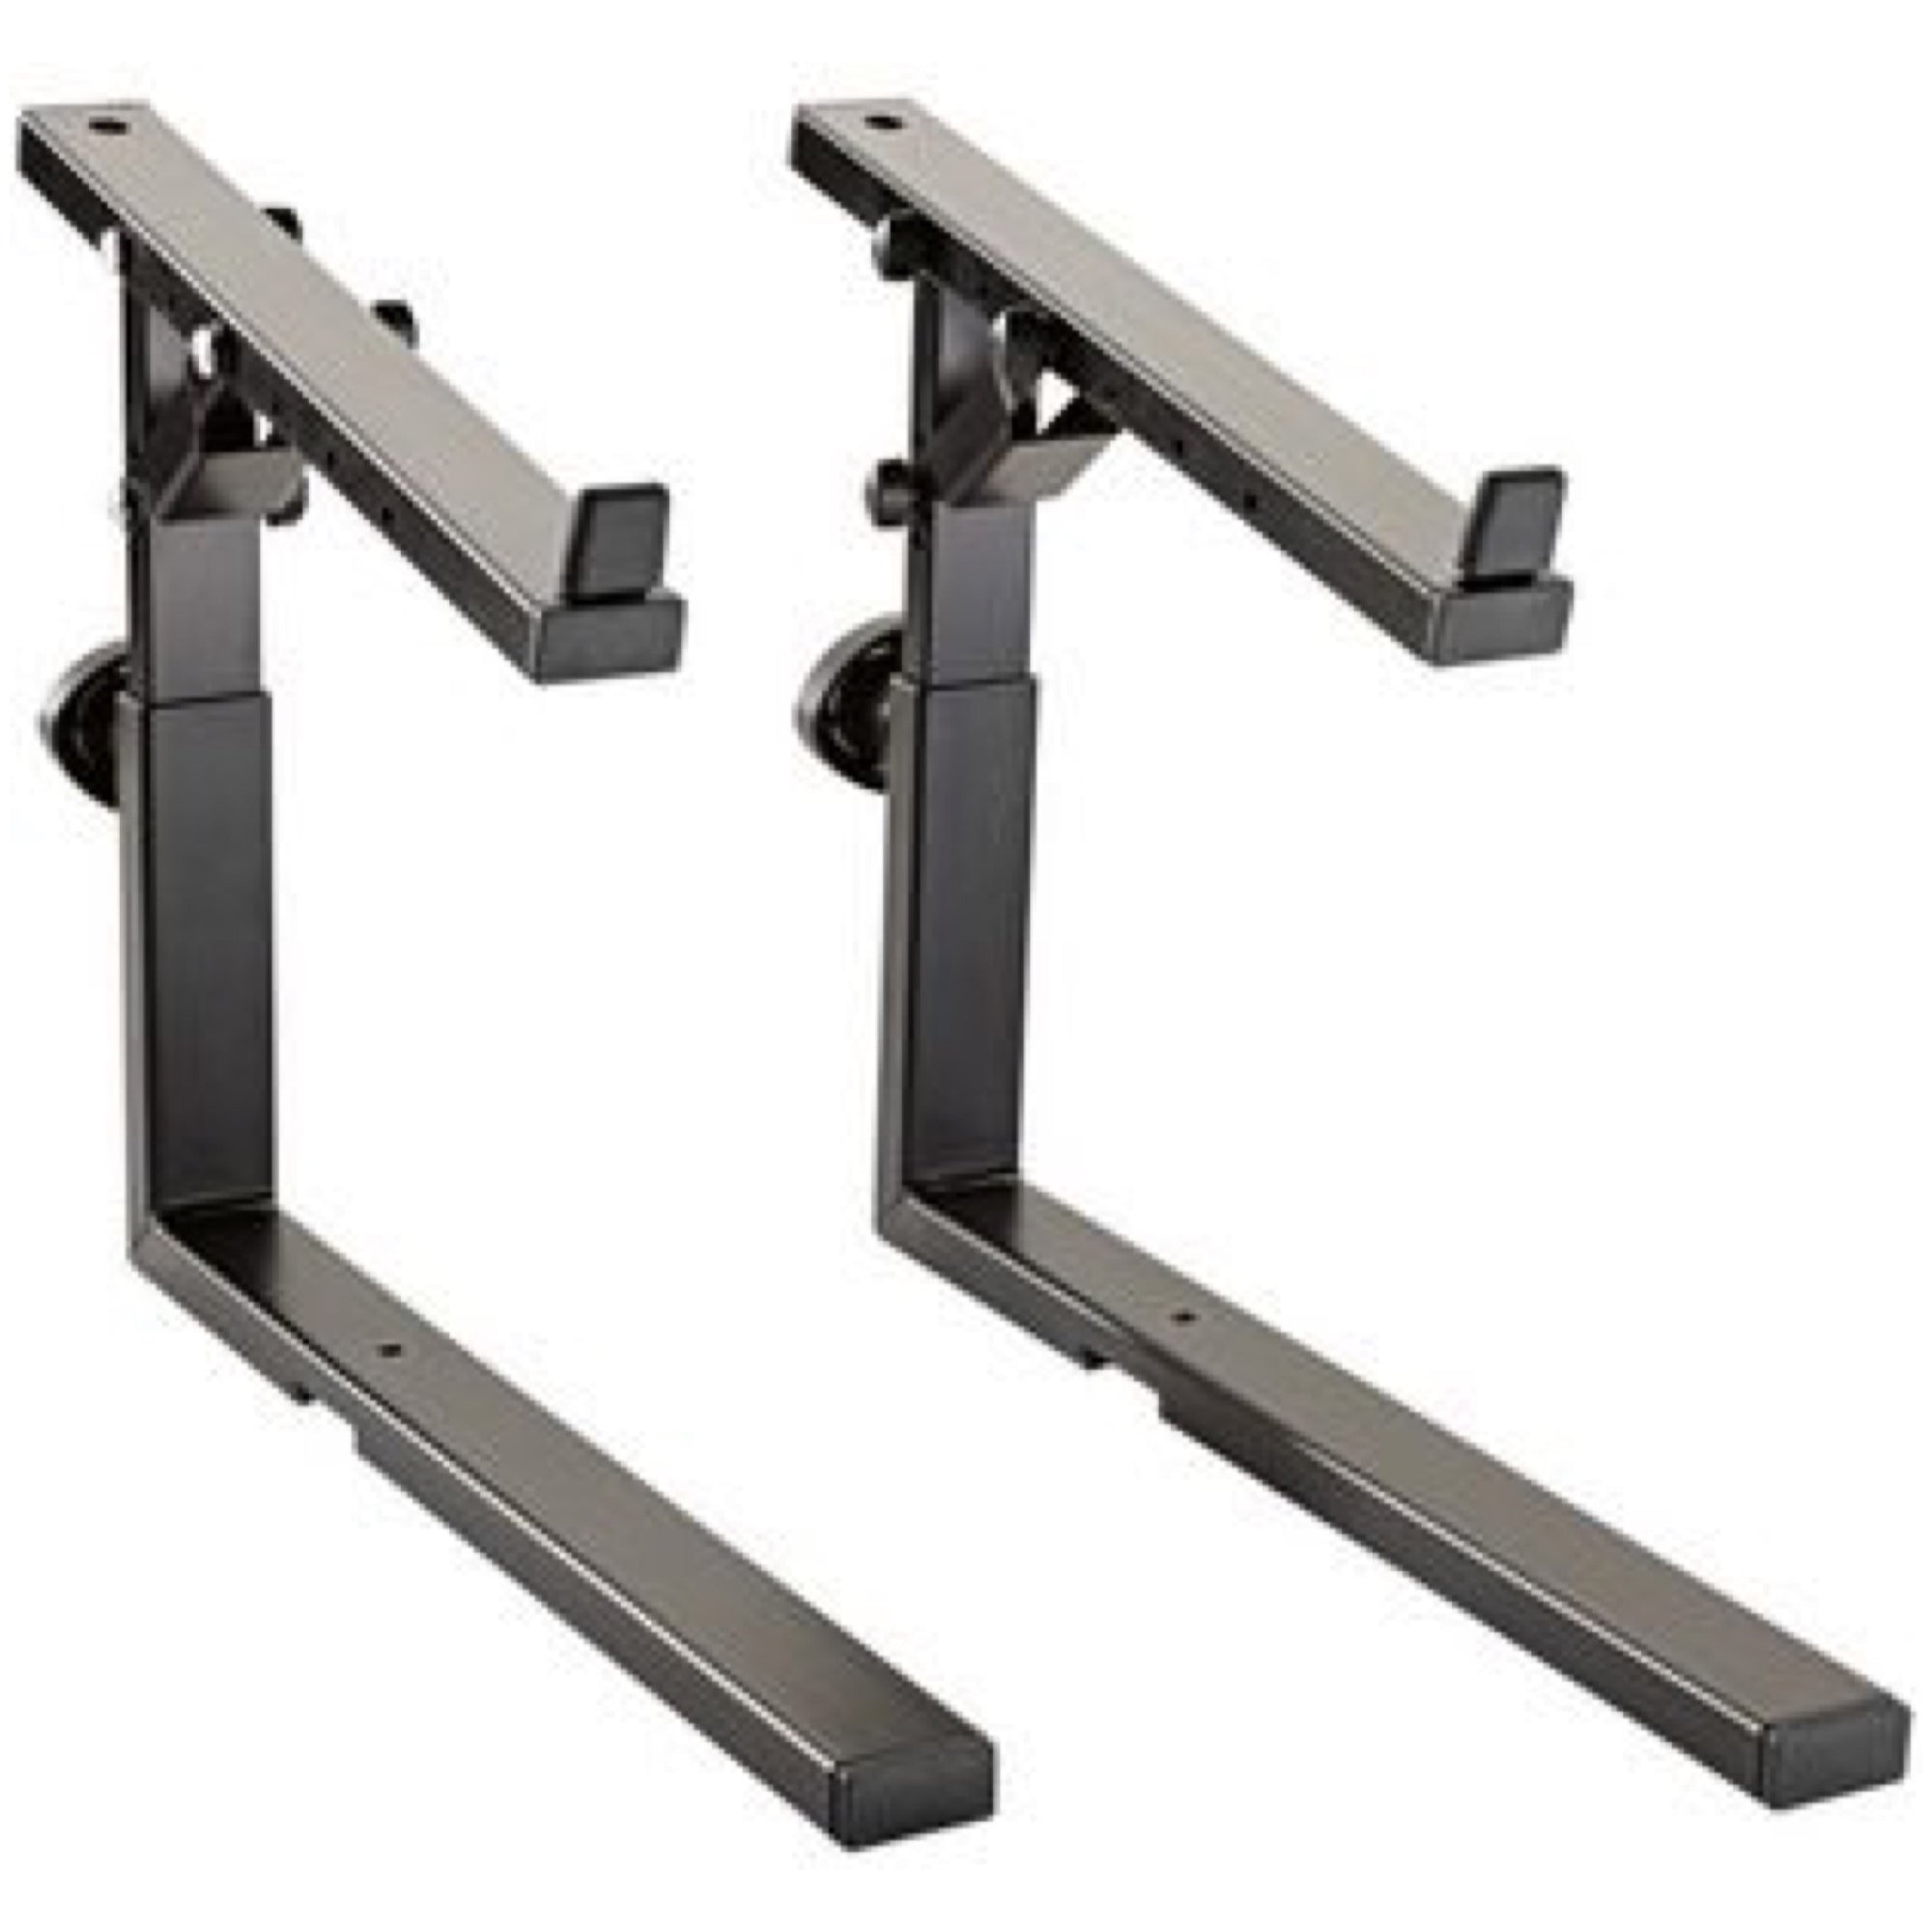 K&M 18811 Stacker 2nd Tier for Omega Keyboard Stand, Black